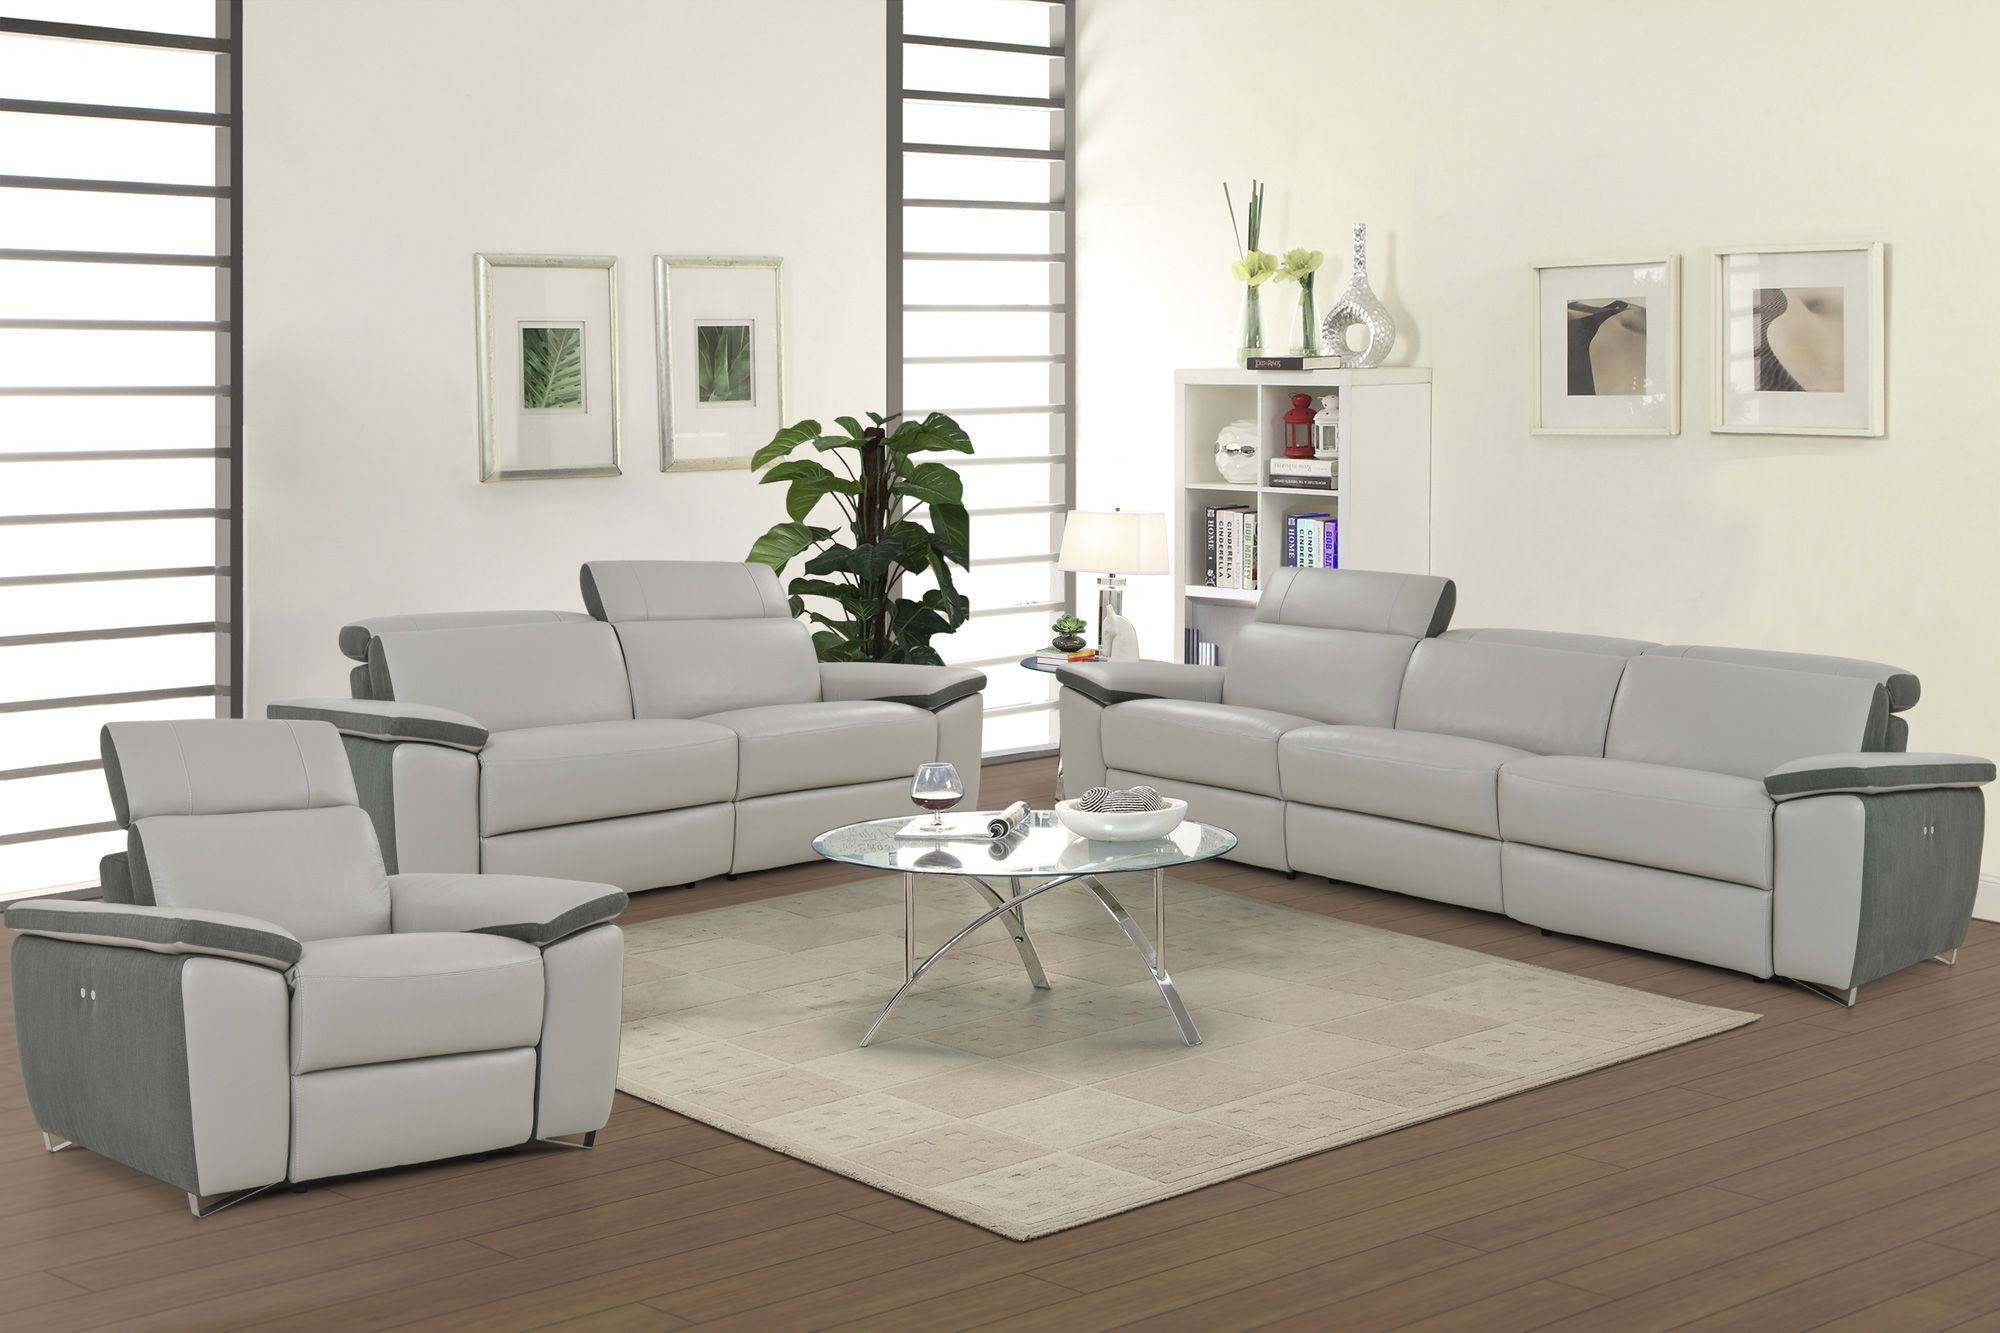 Aura top grain light grey leather power reclining sofa loveseat and chair